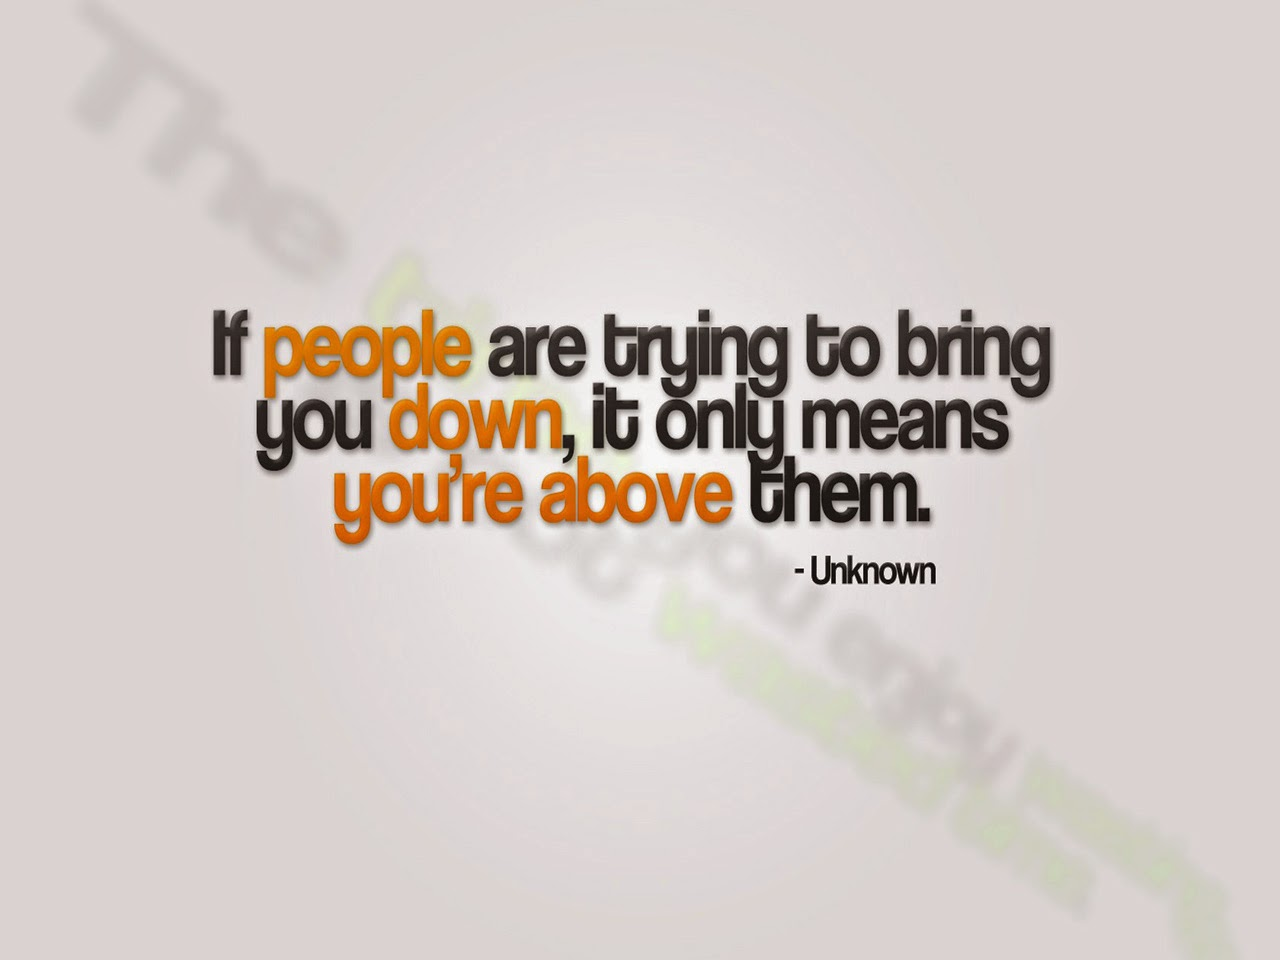 Quotes About People Trying To Bring You Down   If people are trying to bring